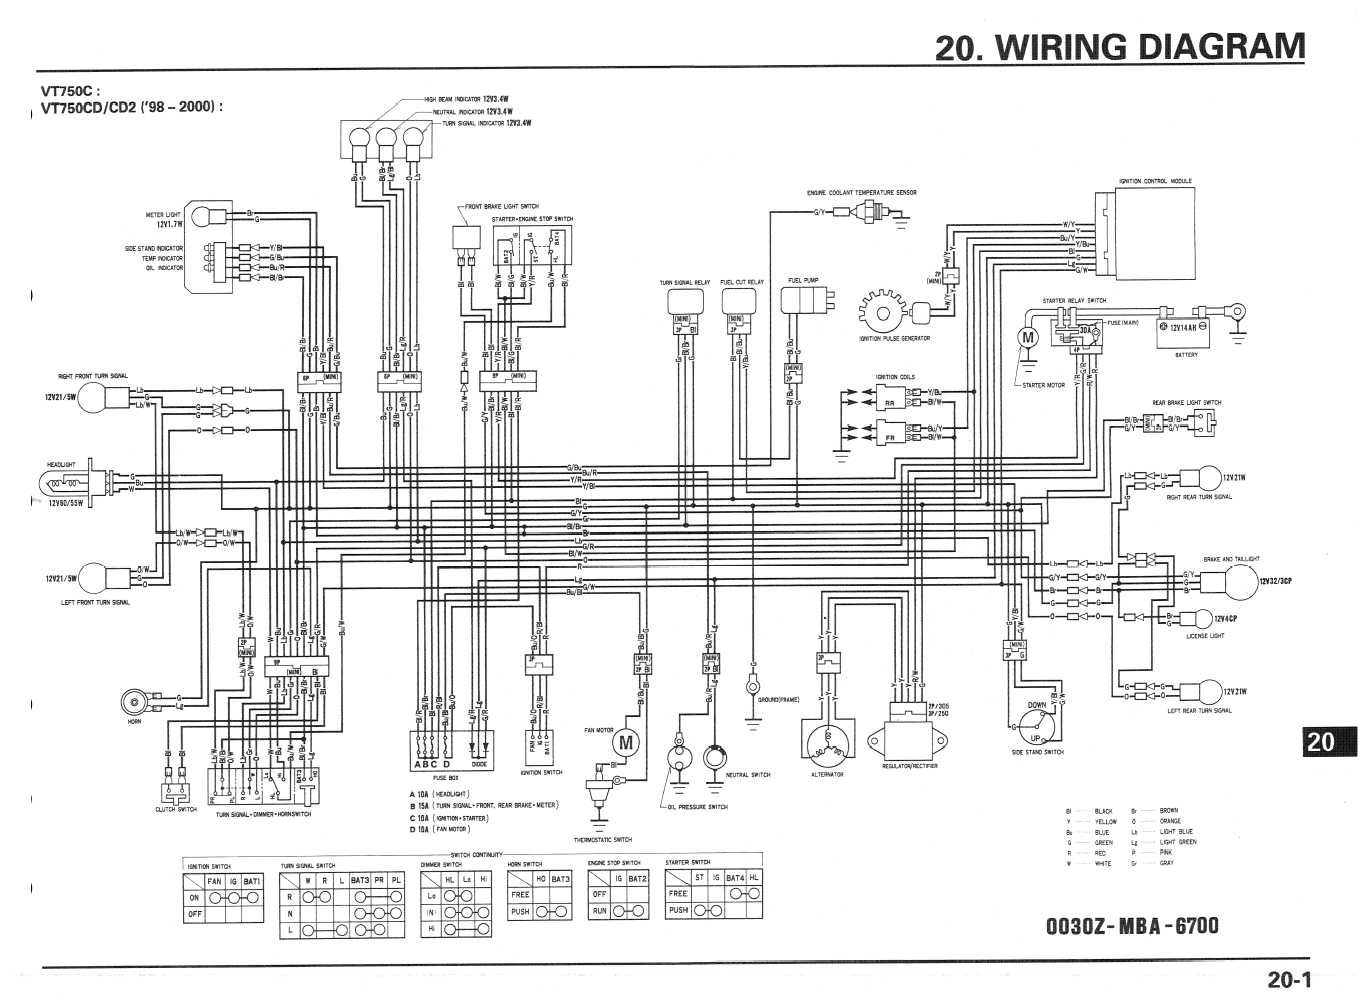 [SCHEMATICS_43NM]  2008 Honda Shadow Wiring Diagram Diagram Base Website Wiring Diagram -  LABELEDHEARTDIAGRAM.SMARTPROJECTS.IT | 2002 Honda Shadow Wiring Diagram |  | Diagram Base Website Full Edition - The Best and Completed Full Edition of  Diagram Database Website You Can Find in The Internet - smartprojects